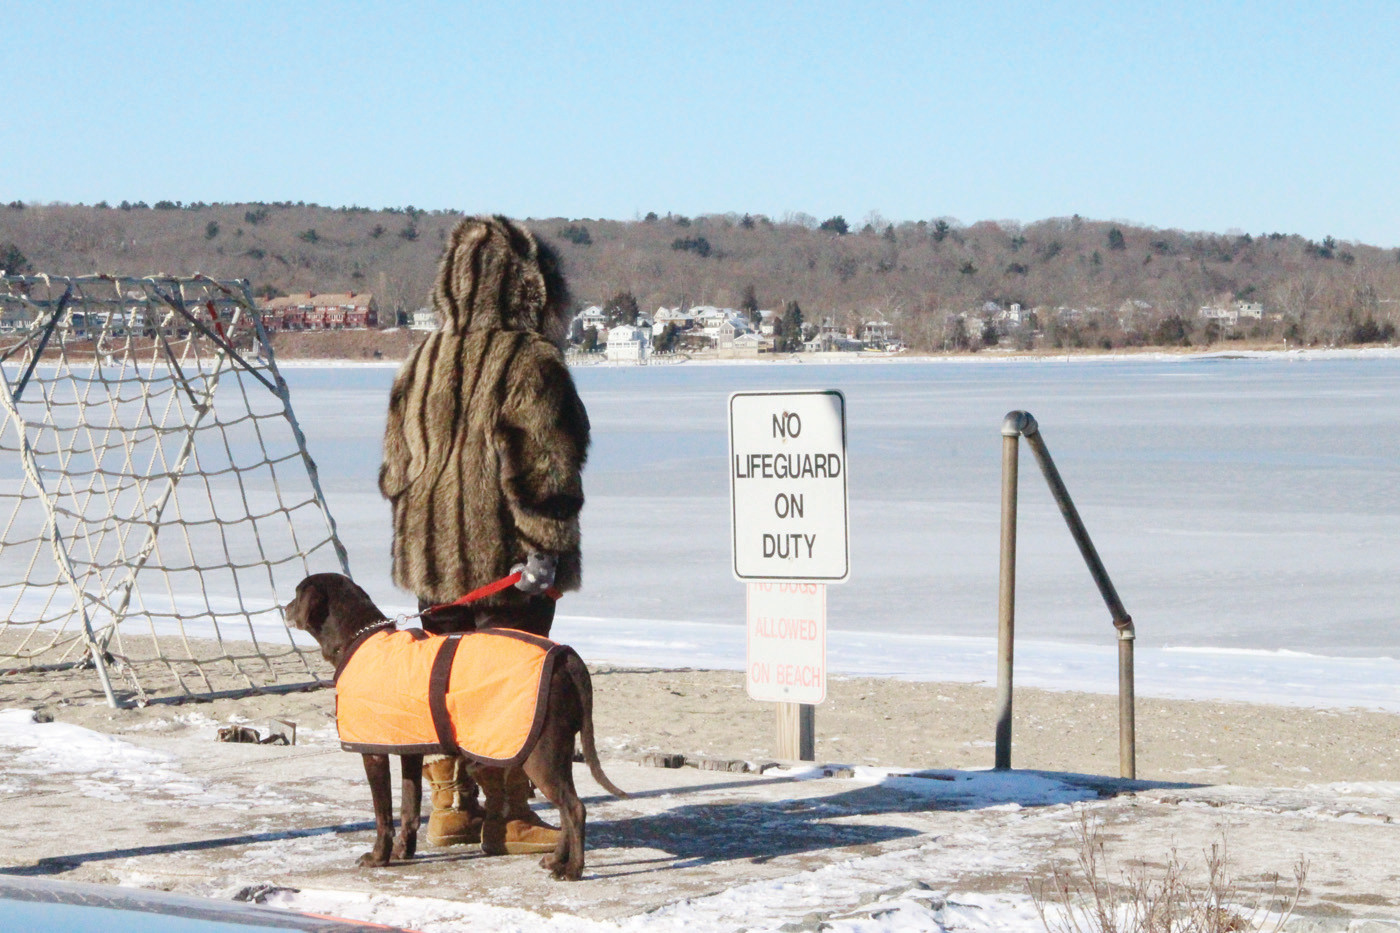 BLEAK SCENE: A spectator and her dog take in the frozen scene at Monday's event.